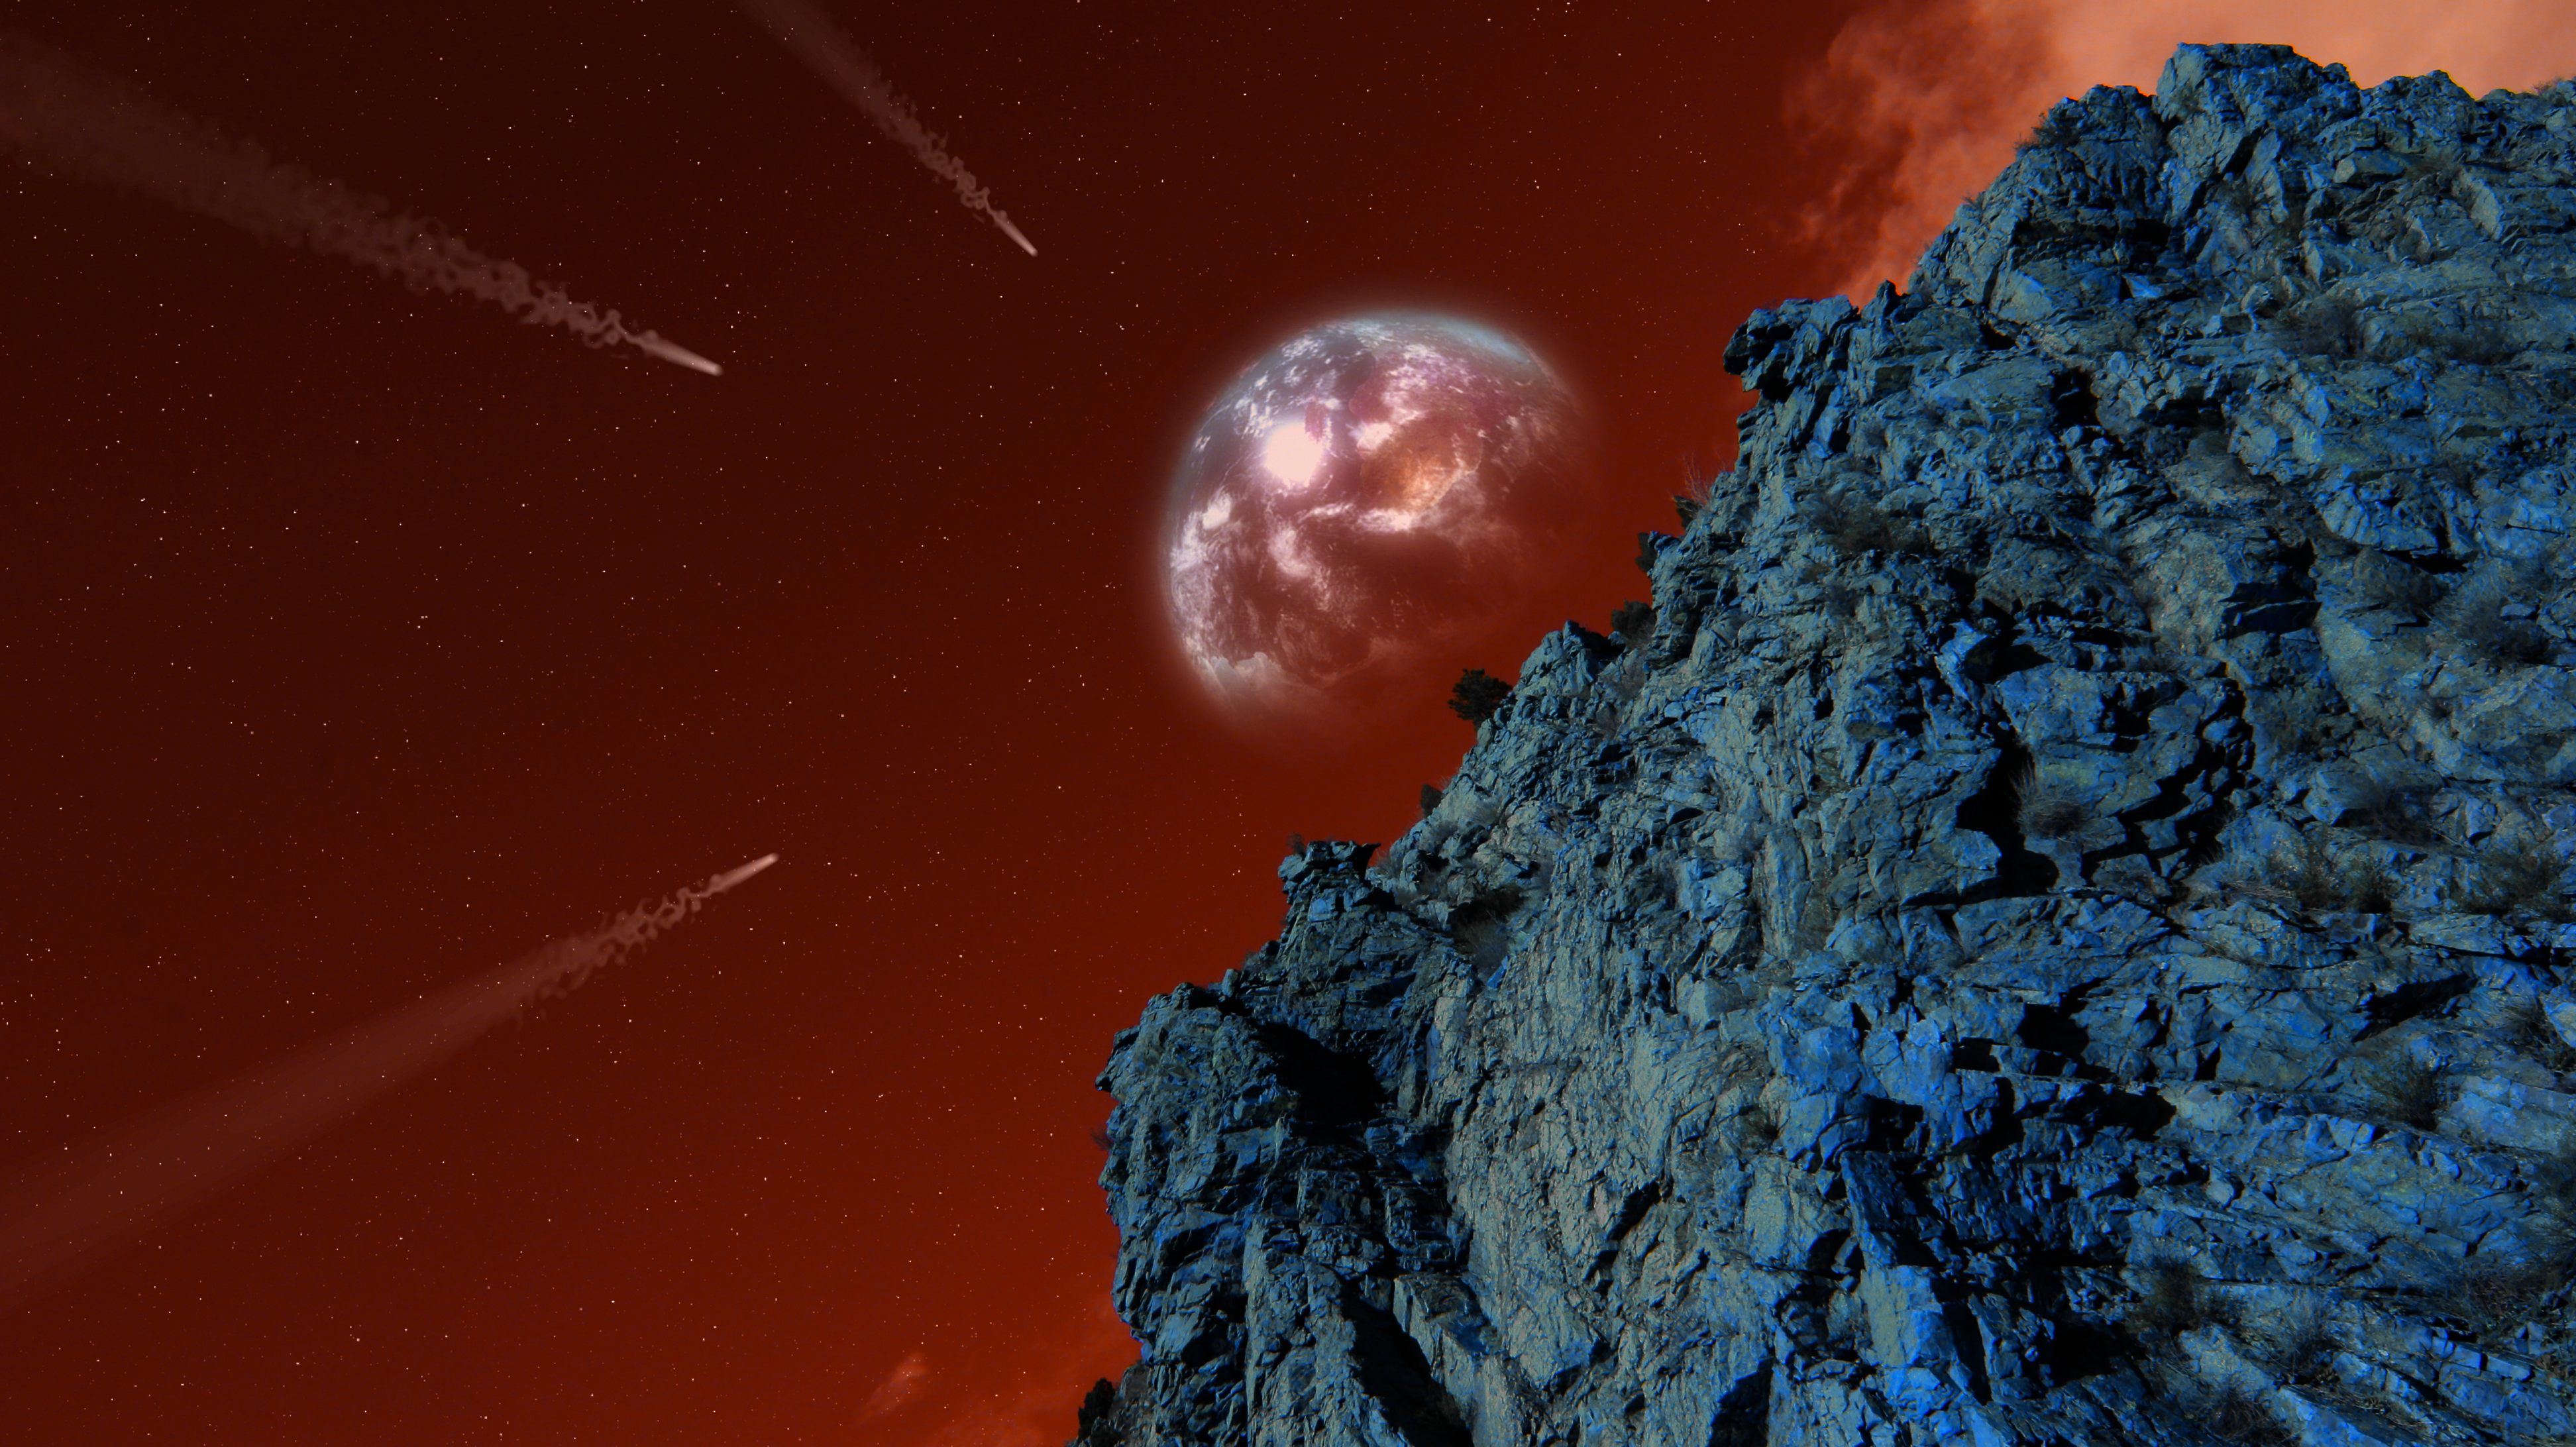 General 3888x2184 space universe Earth Moon space travel graphic design digital art fantasy art stars nature rocks Rock wall red blue flying space shuttle trees dreamscape galaxy mountains